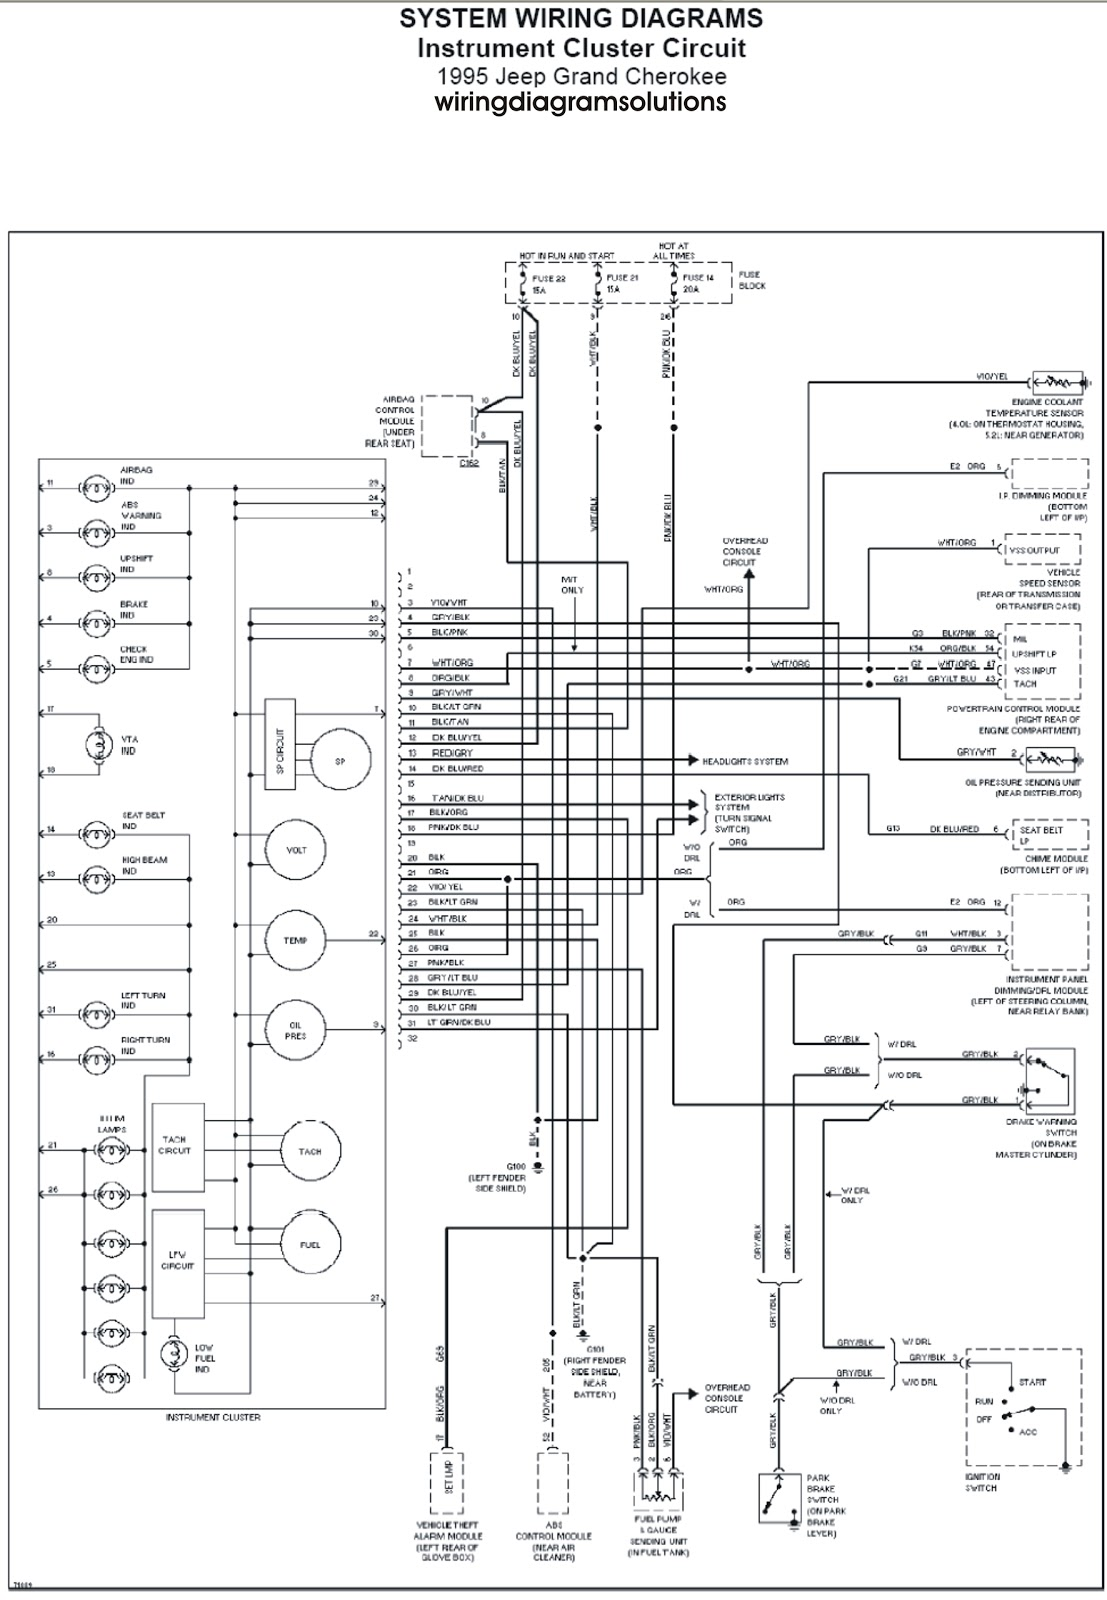 95 Jeep Yj Wiring Diagram Data 2002 Wrangler Fuel Gauge 4 0 Harness Schema Diagrams Frame